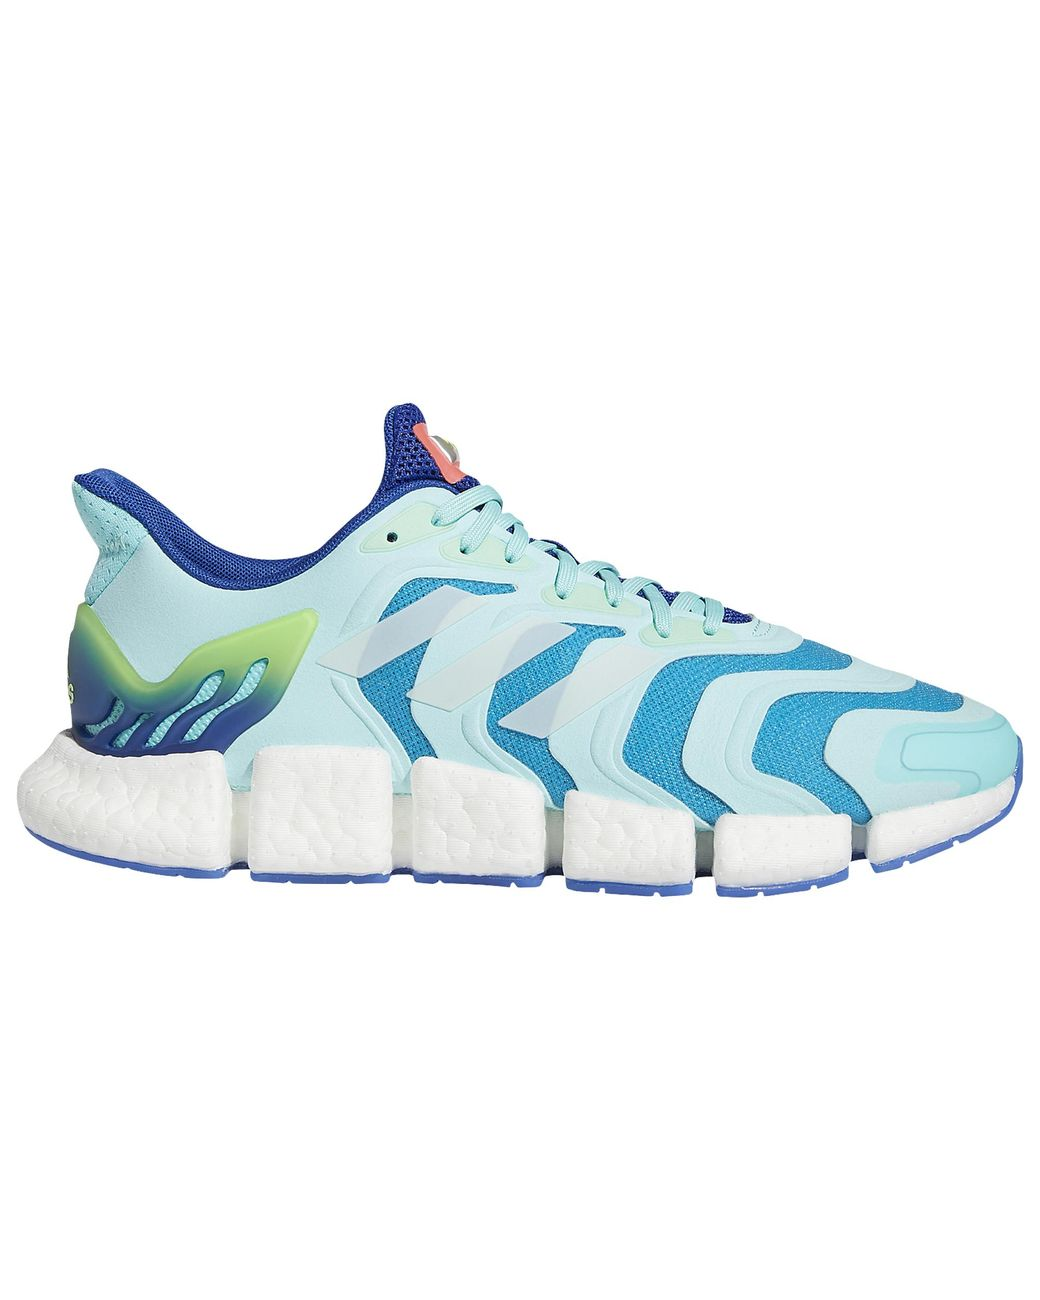 adidas Lace Climacool Vento Summer.rdy - Running Shoes in Blue for ...